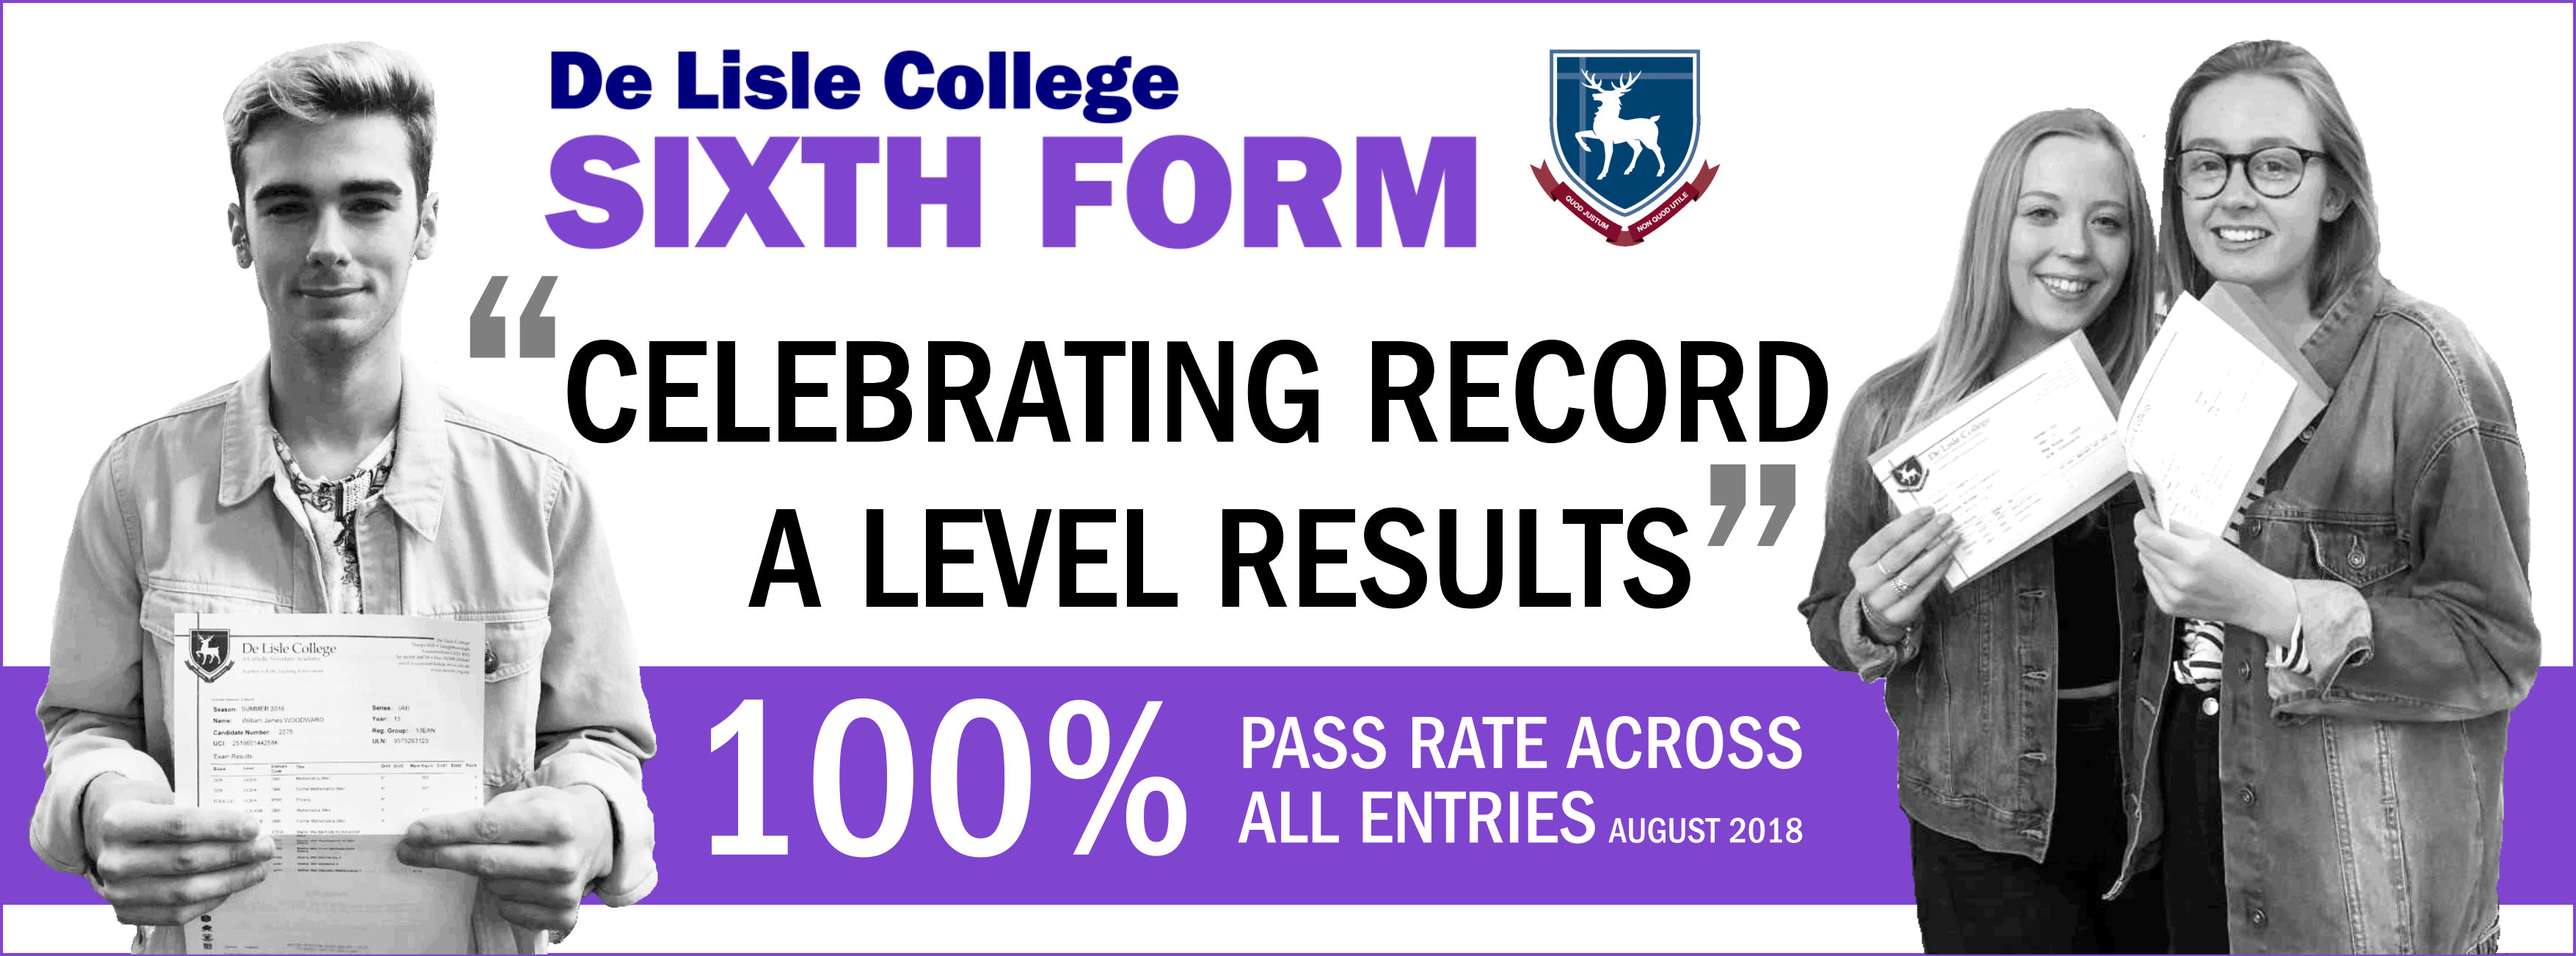 A level results banner 2018